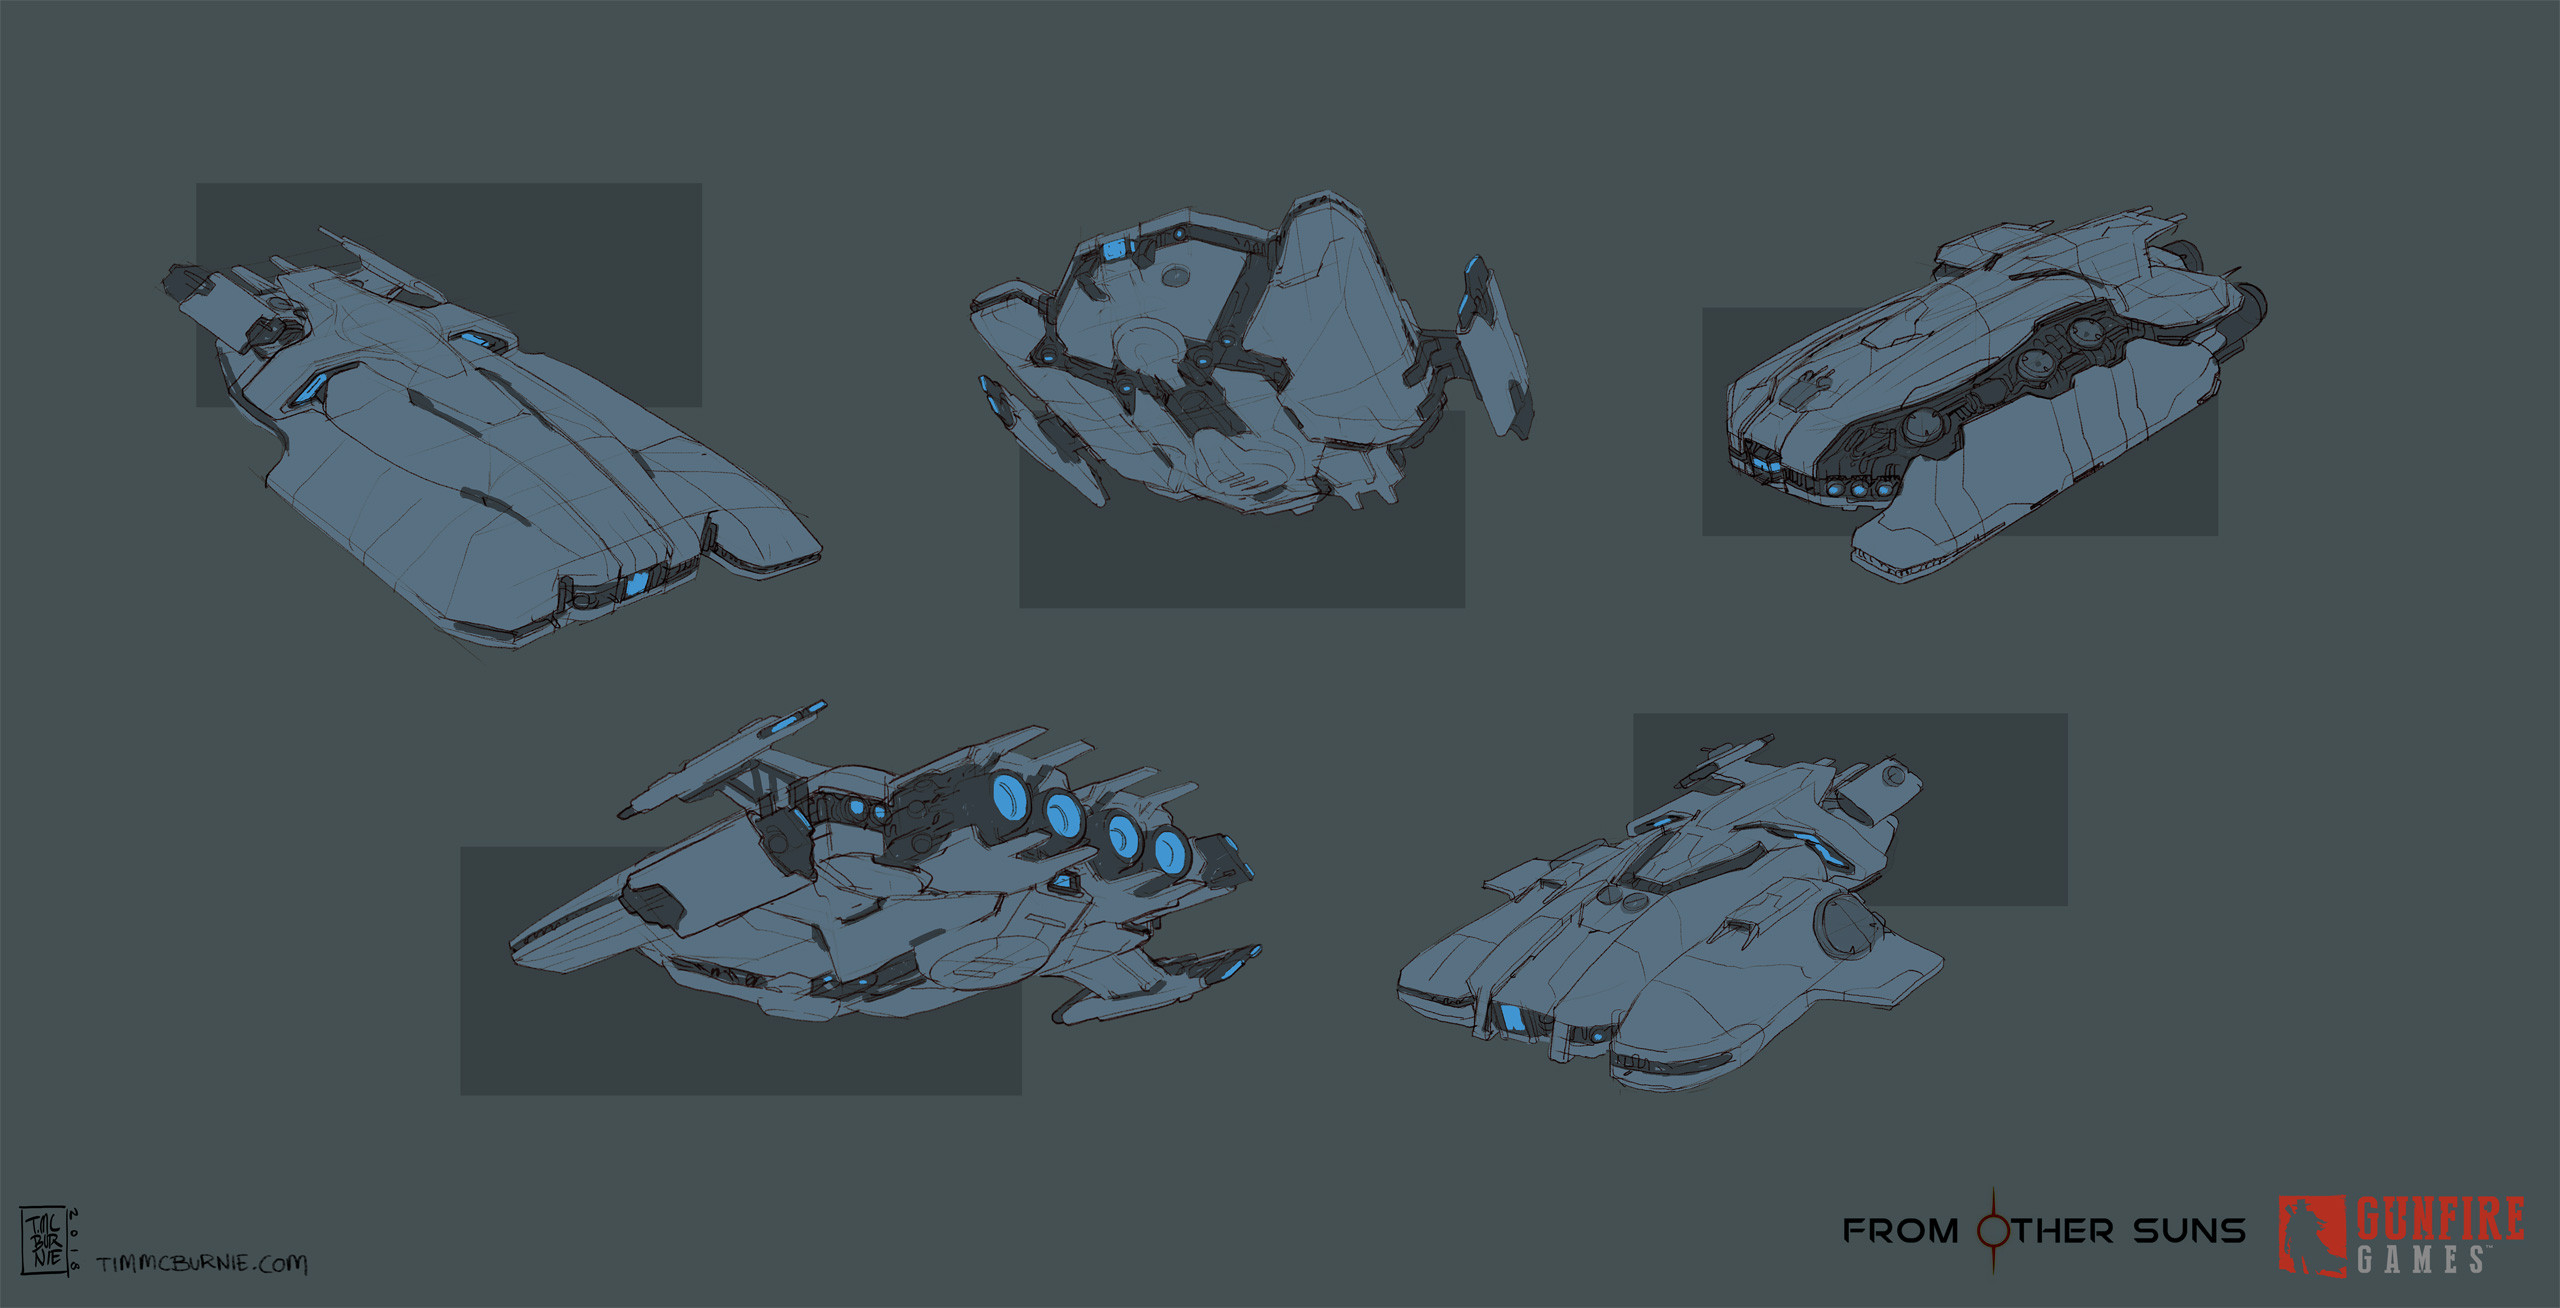 Different initial ideas for the ship